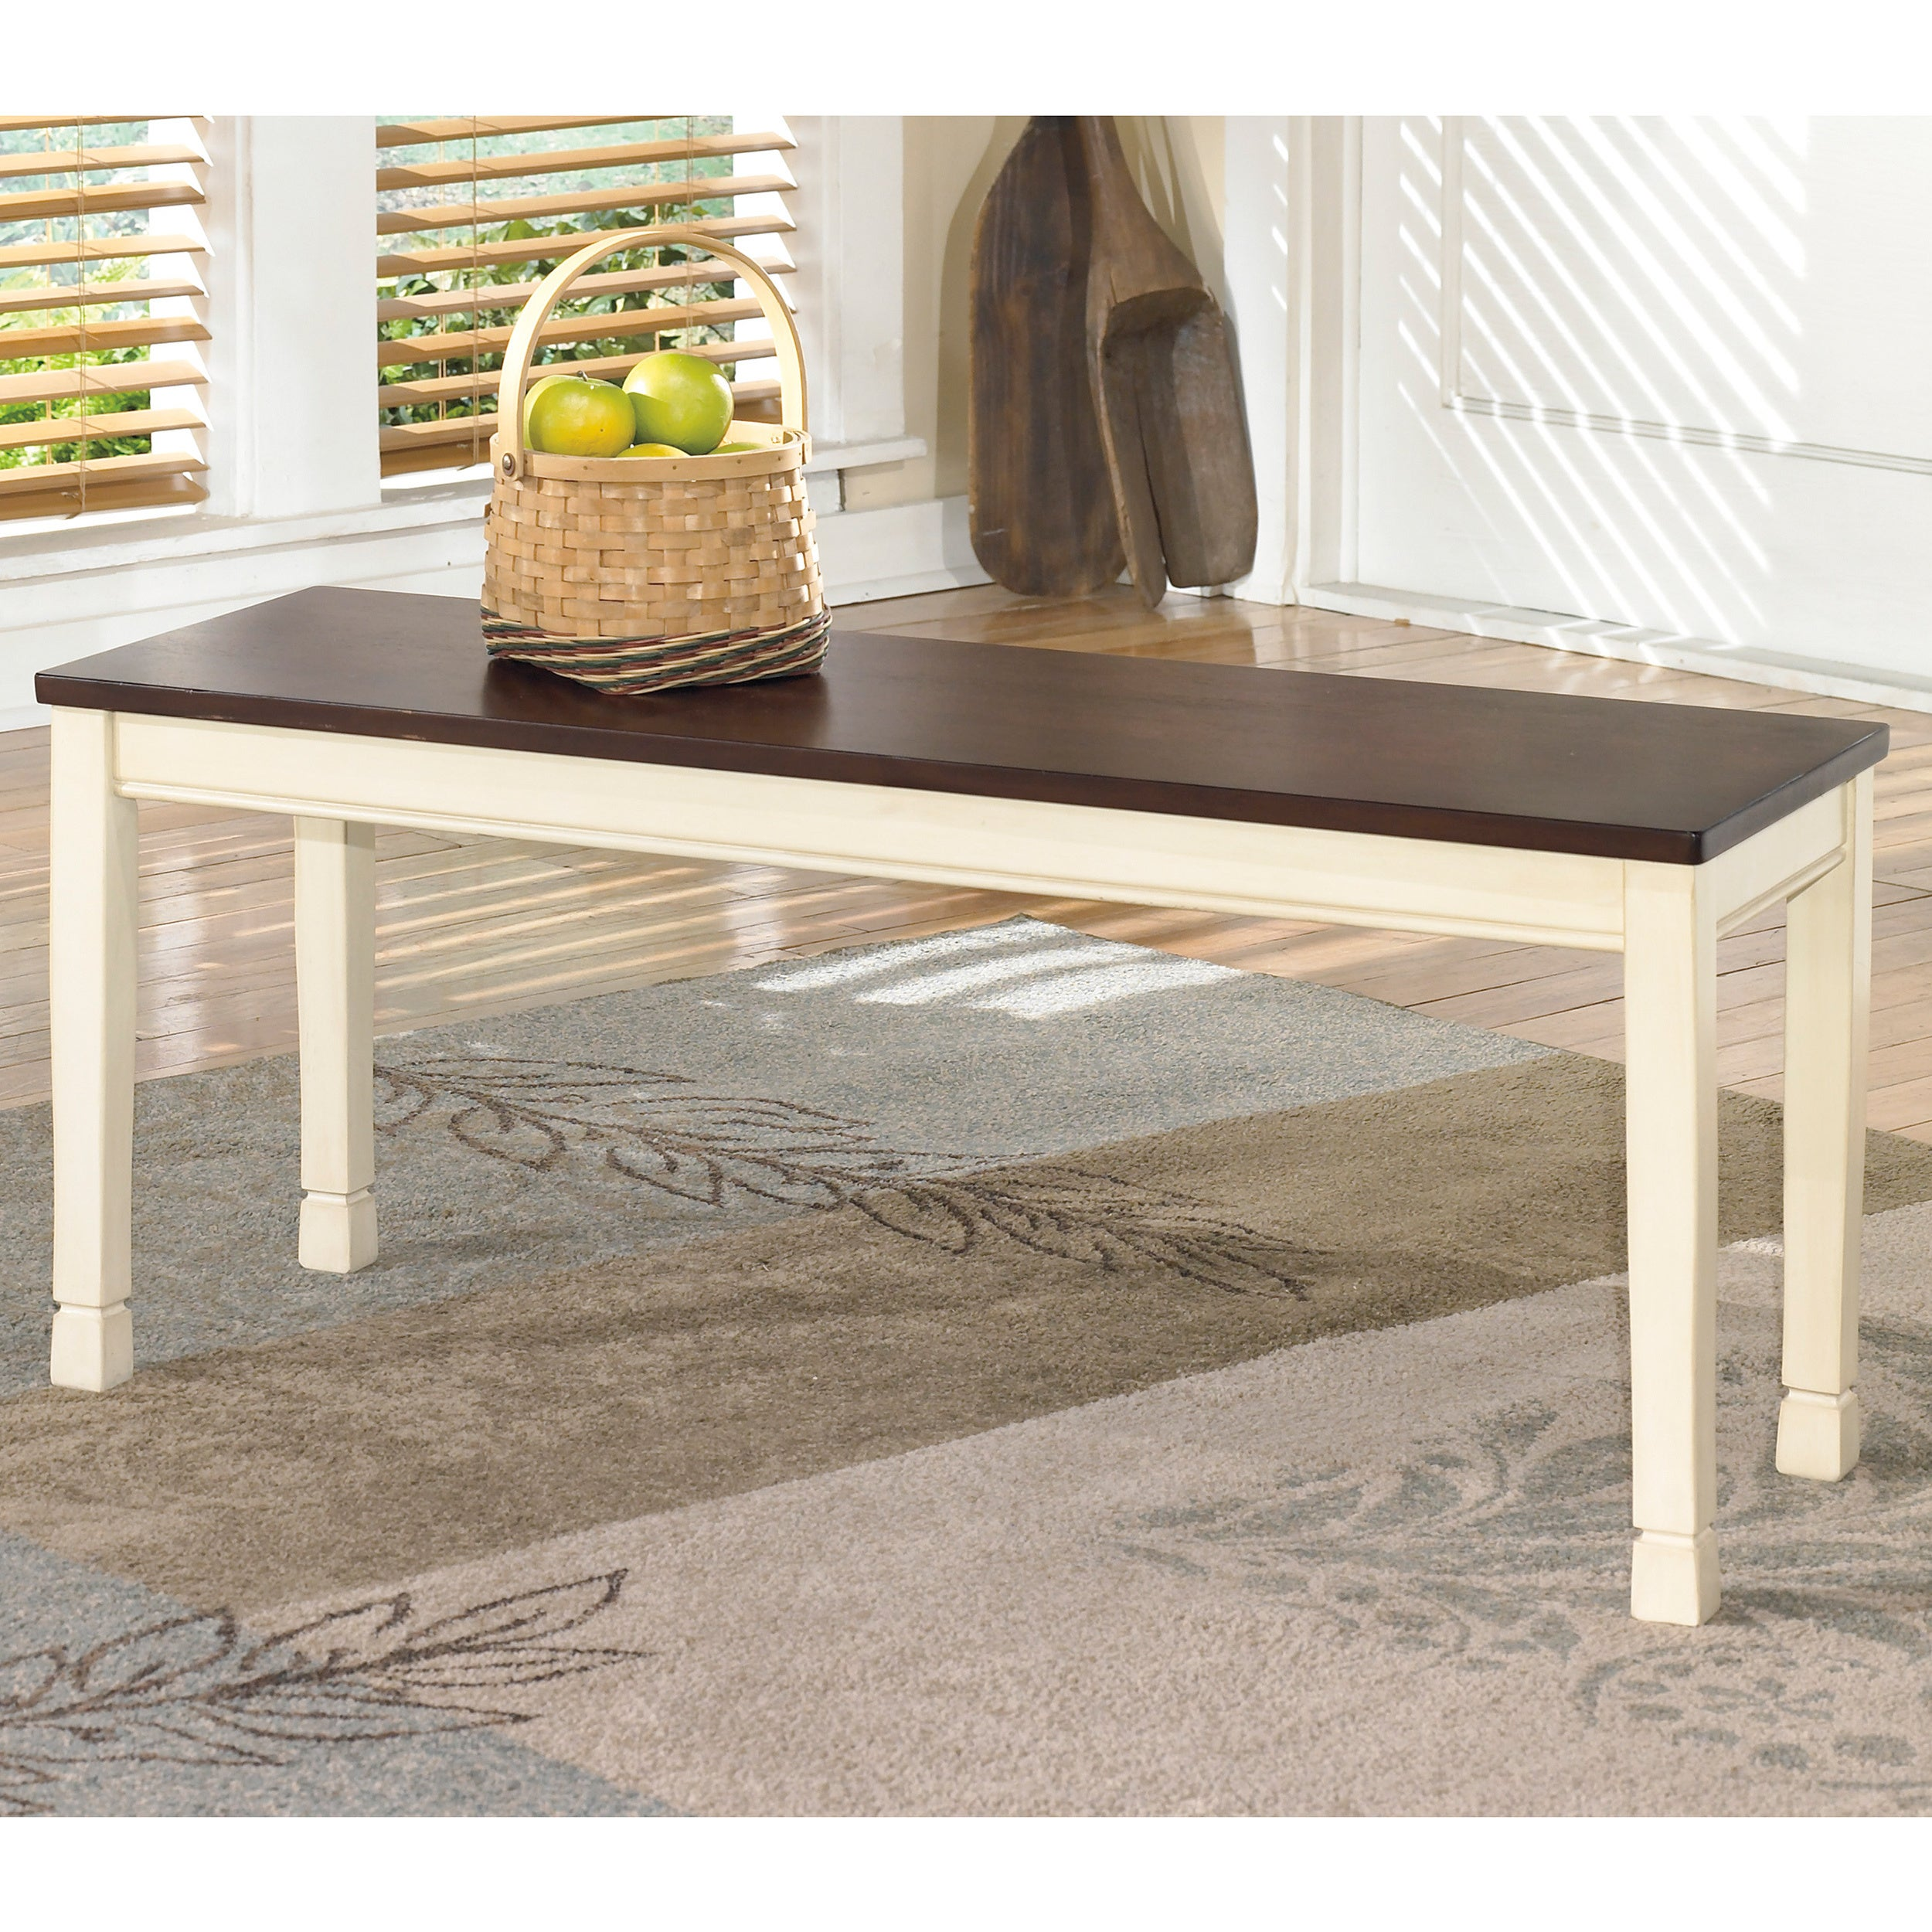 Signature Design by Ashley \'Whitesburg\' Dining Room Bench - N/A